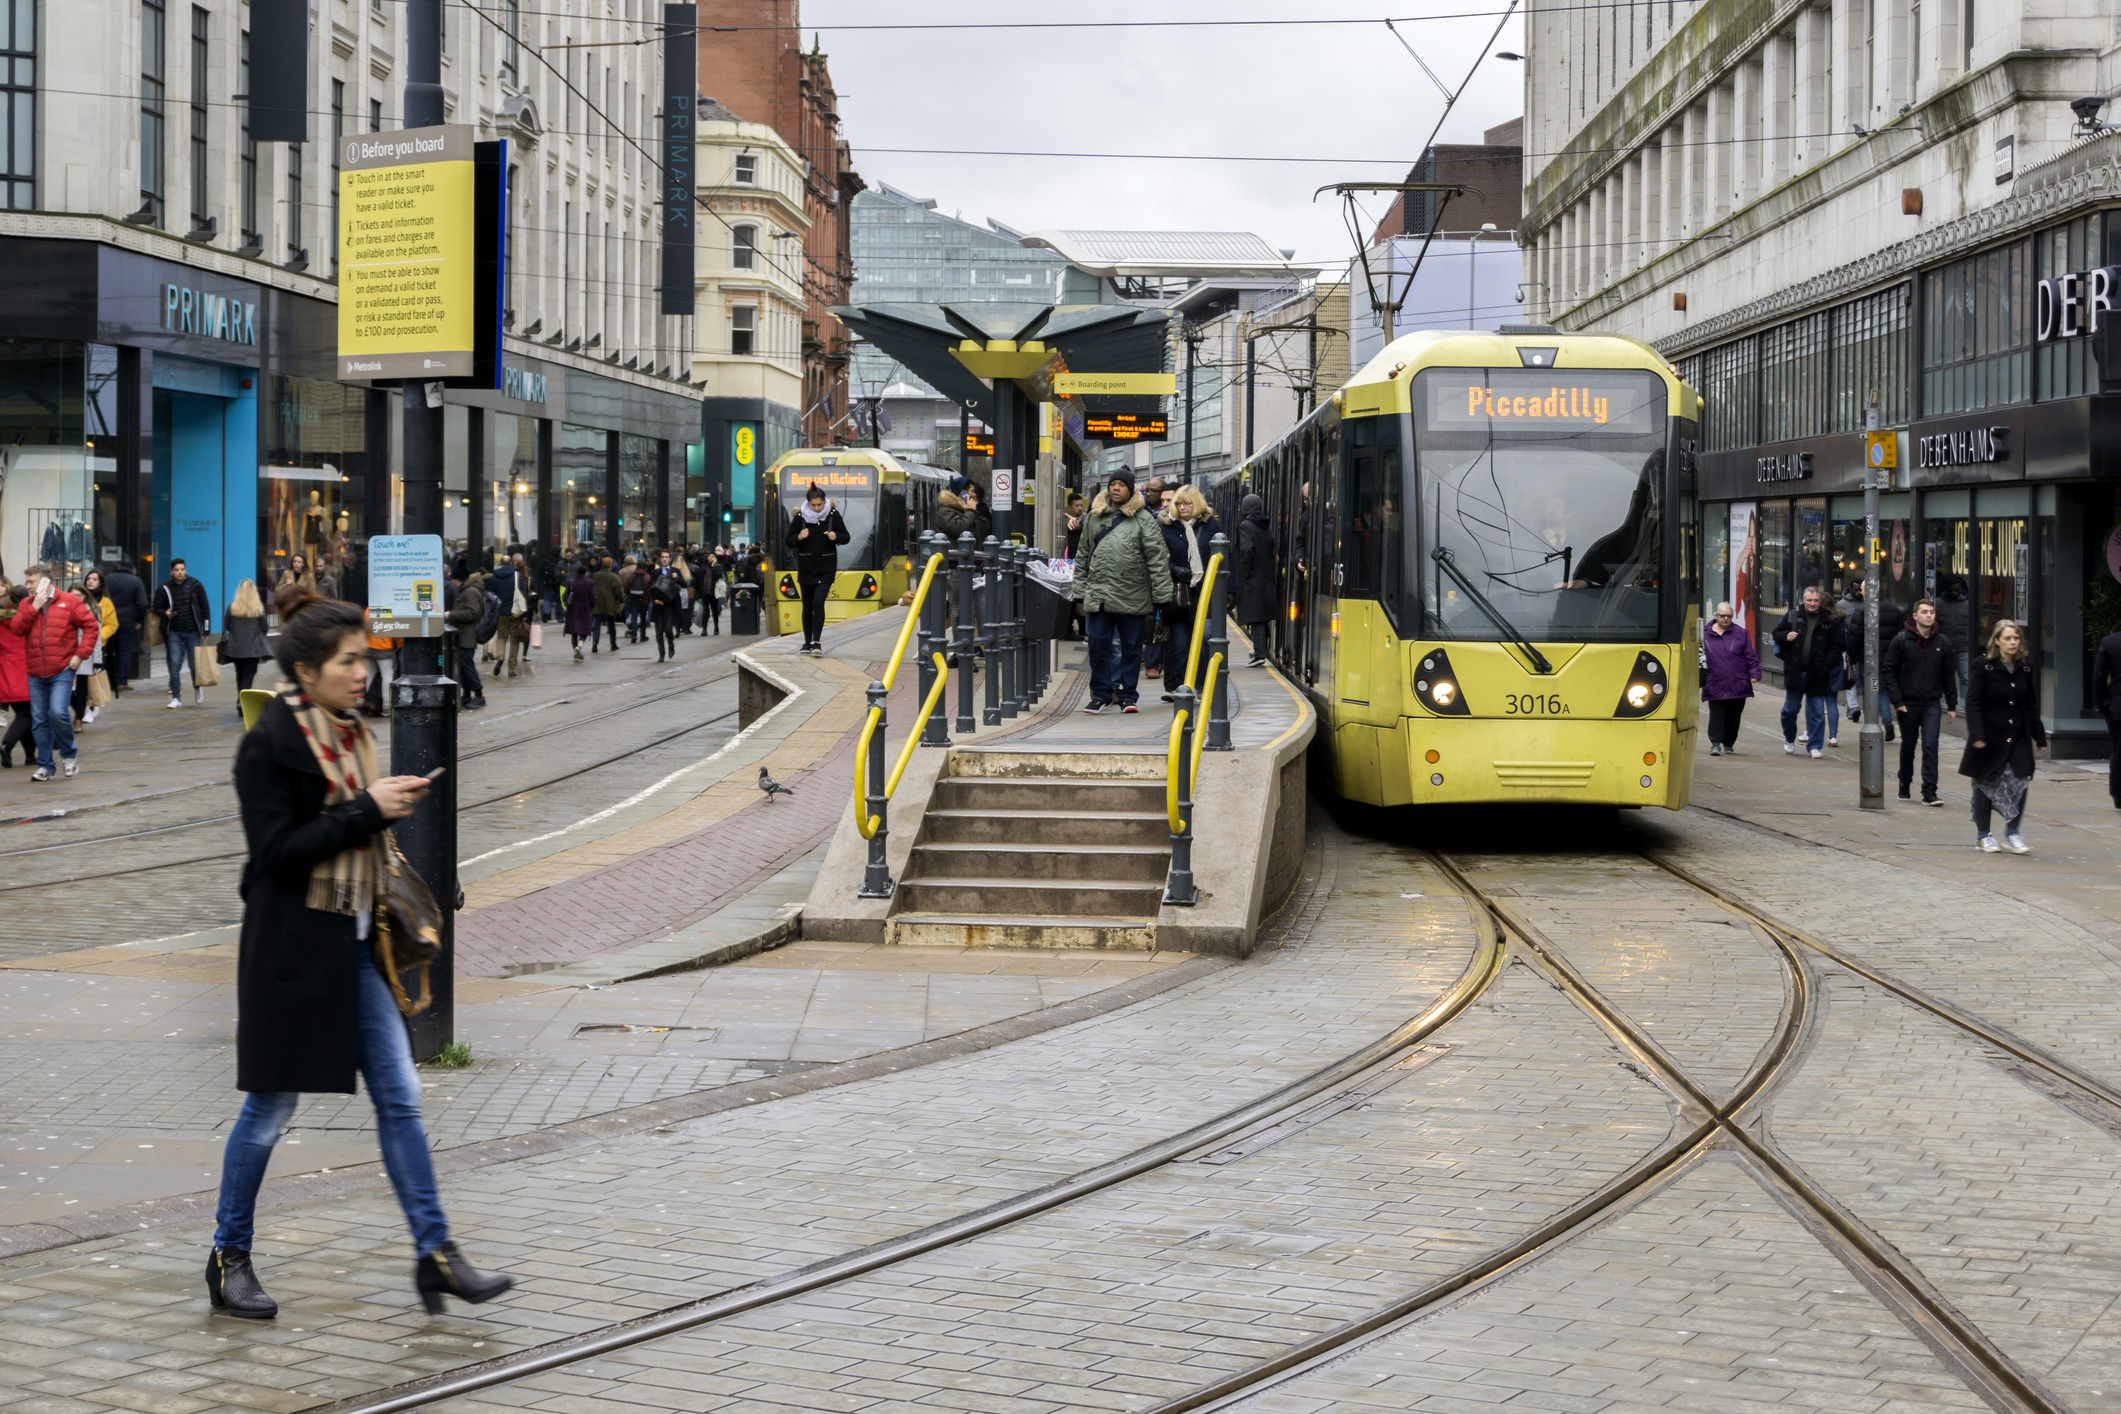 People use yellow tram to commute to Manchesters best branding agencies